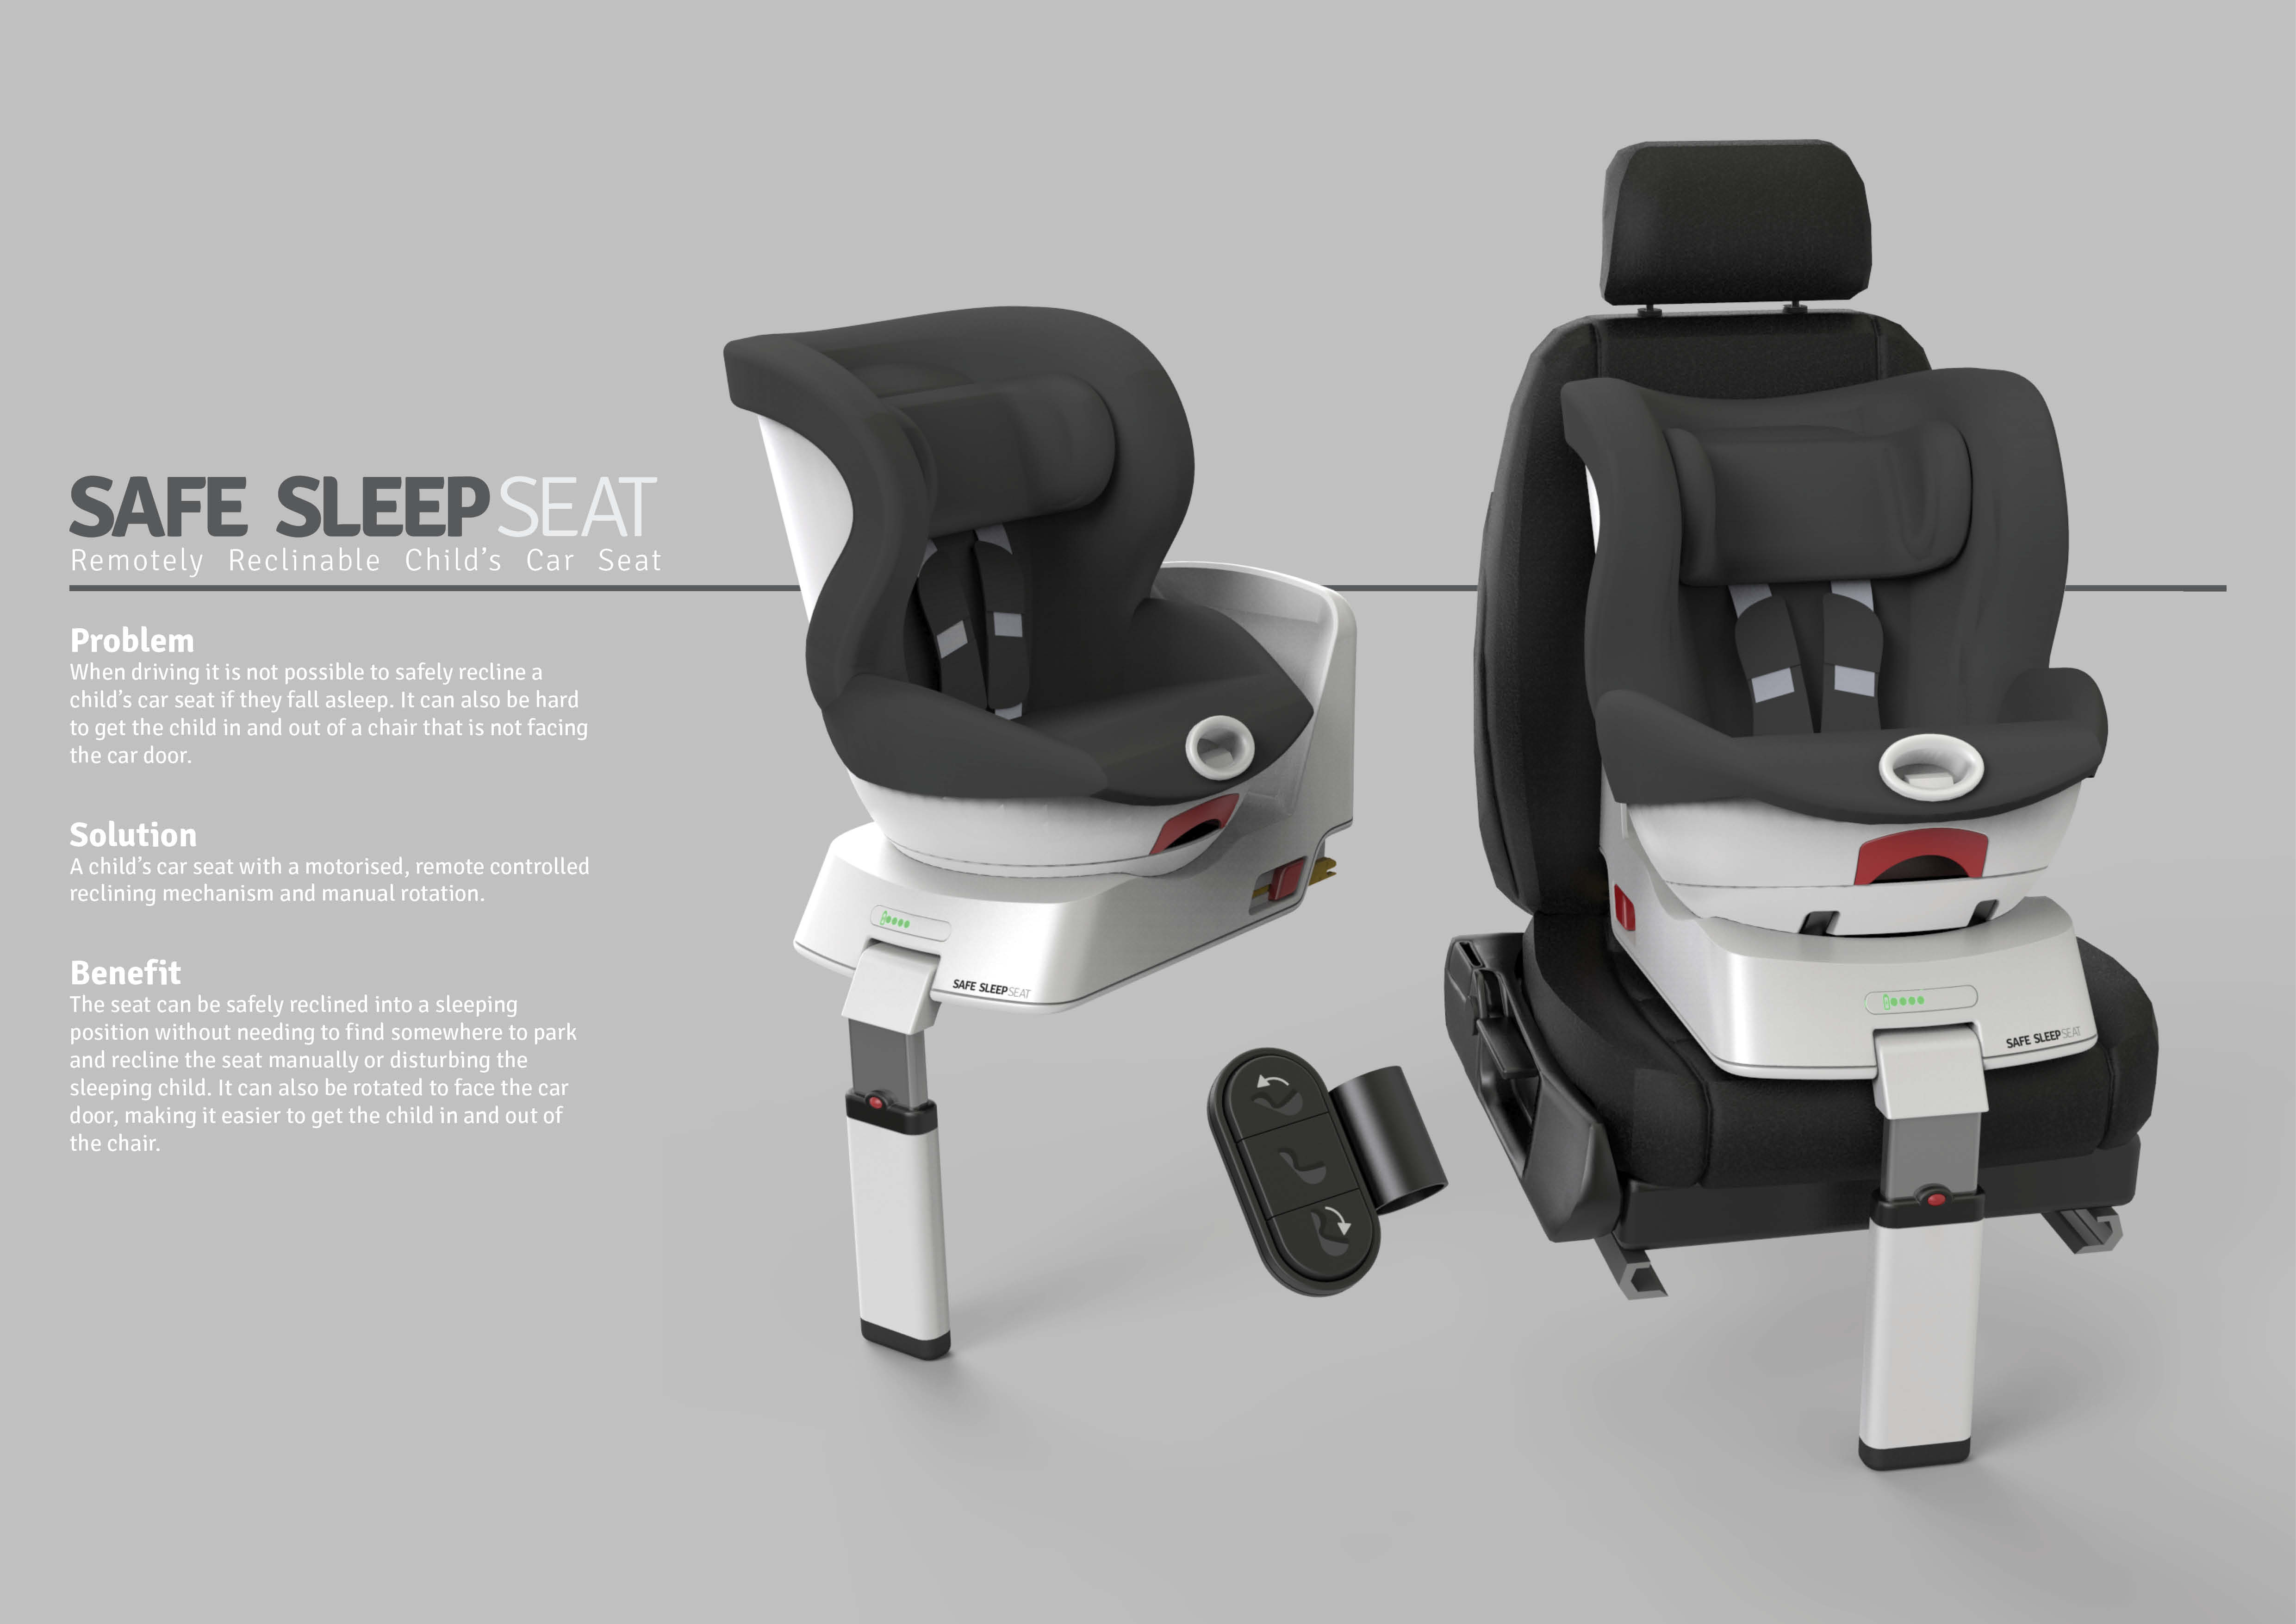 The Main Aim Of Seat Is To Prevent Accidents While Trying Recline A Childs Car And Reduce Breathing Positional Asphyxia Problems